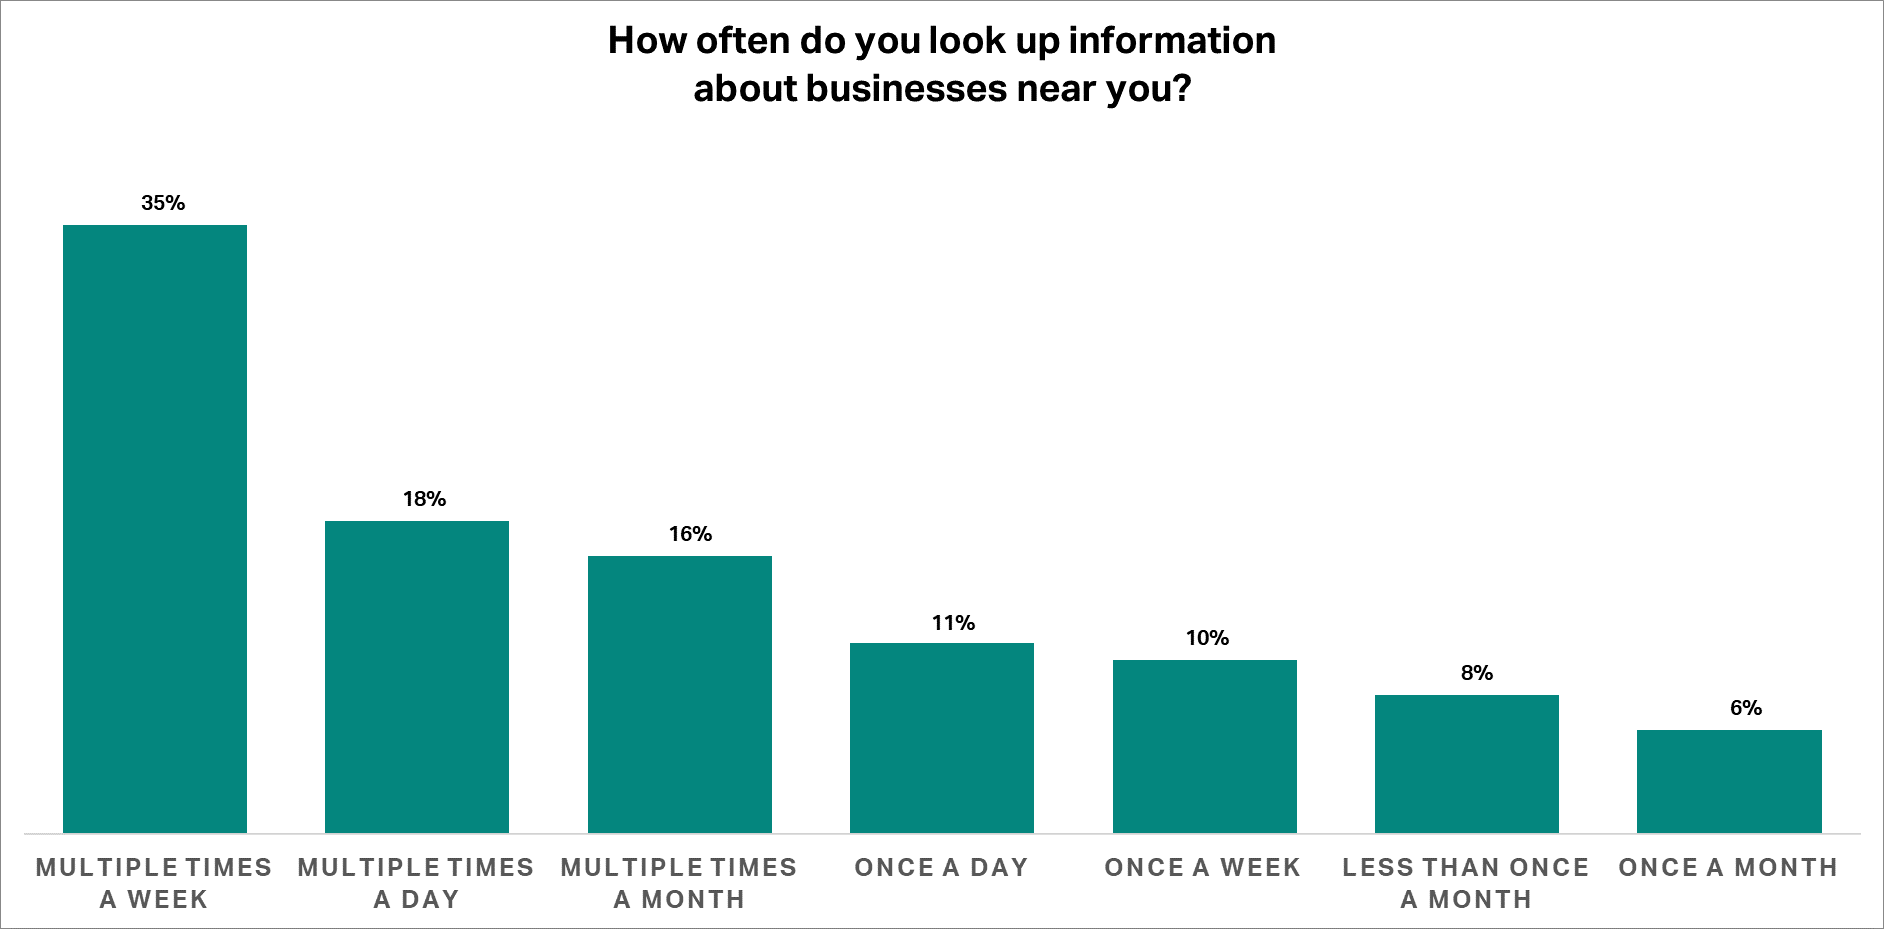 How often do you look up information about businesses near you